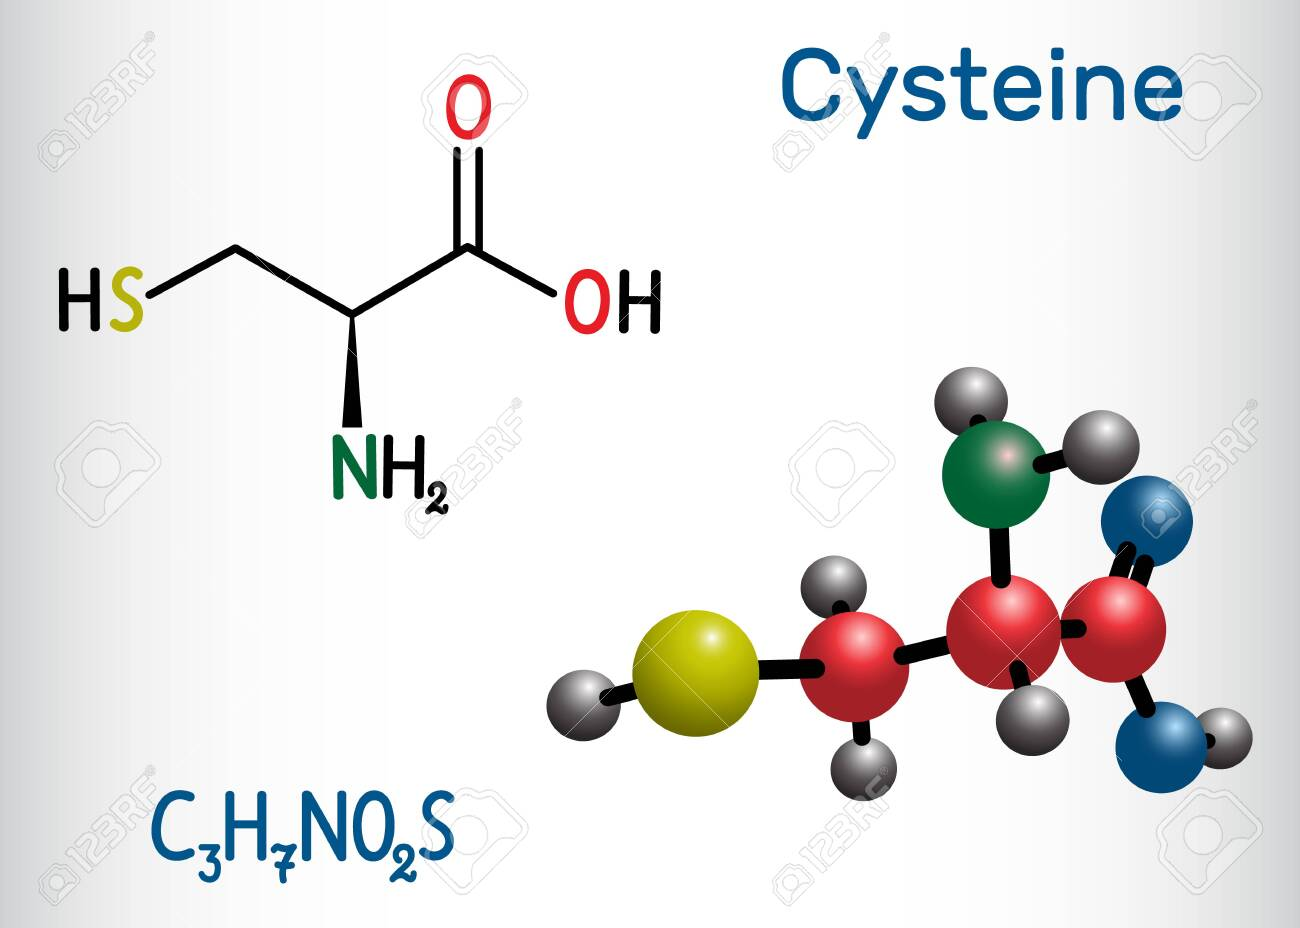 Cysteine (L-cysteine, Cys, C) Proteinogenic Amino Acid Molecule... Royalty  Free Cliparts, Vectors, And Stock Illustration. Image 124098270.